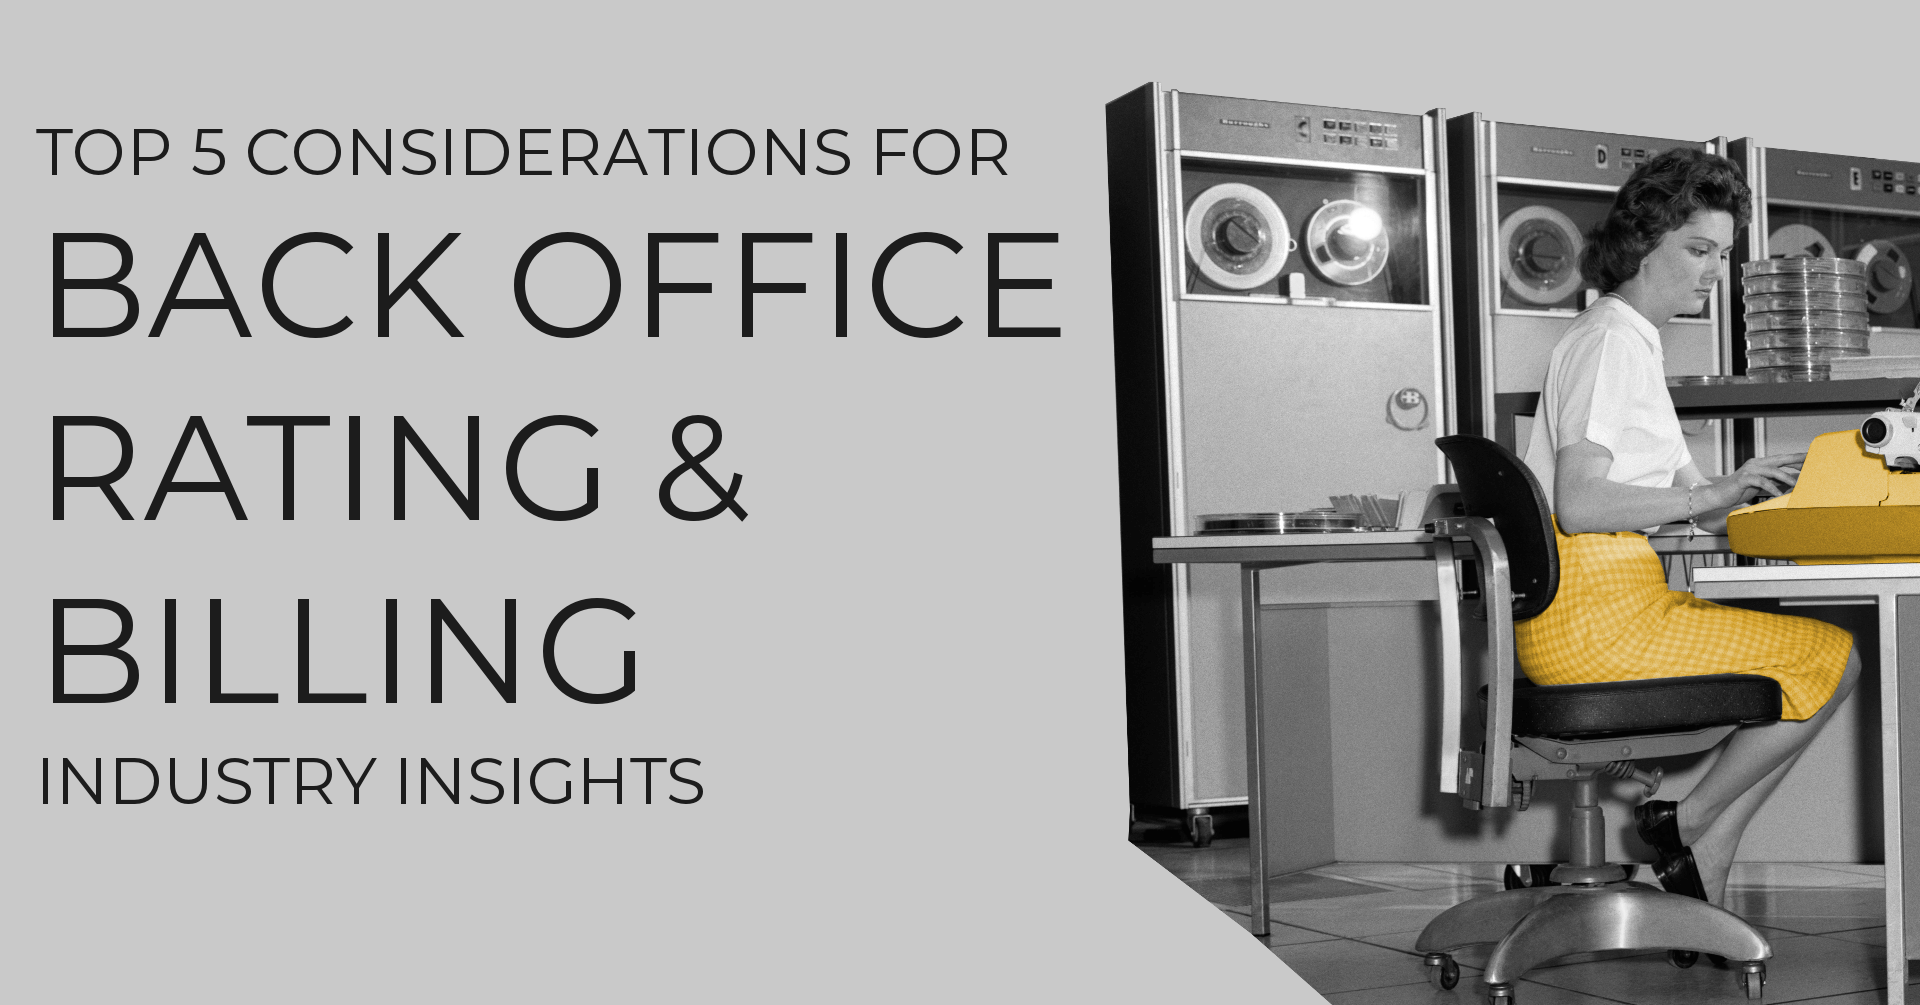 Top 5 Mission Critical Considerations for Back Office Usage Rating & Billing Solutions